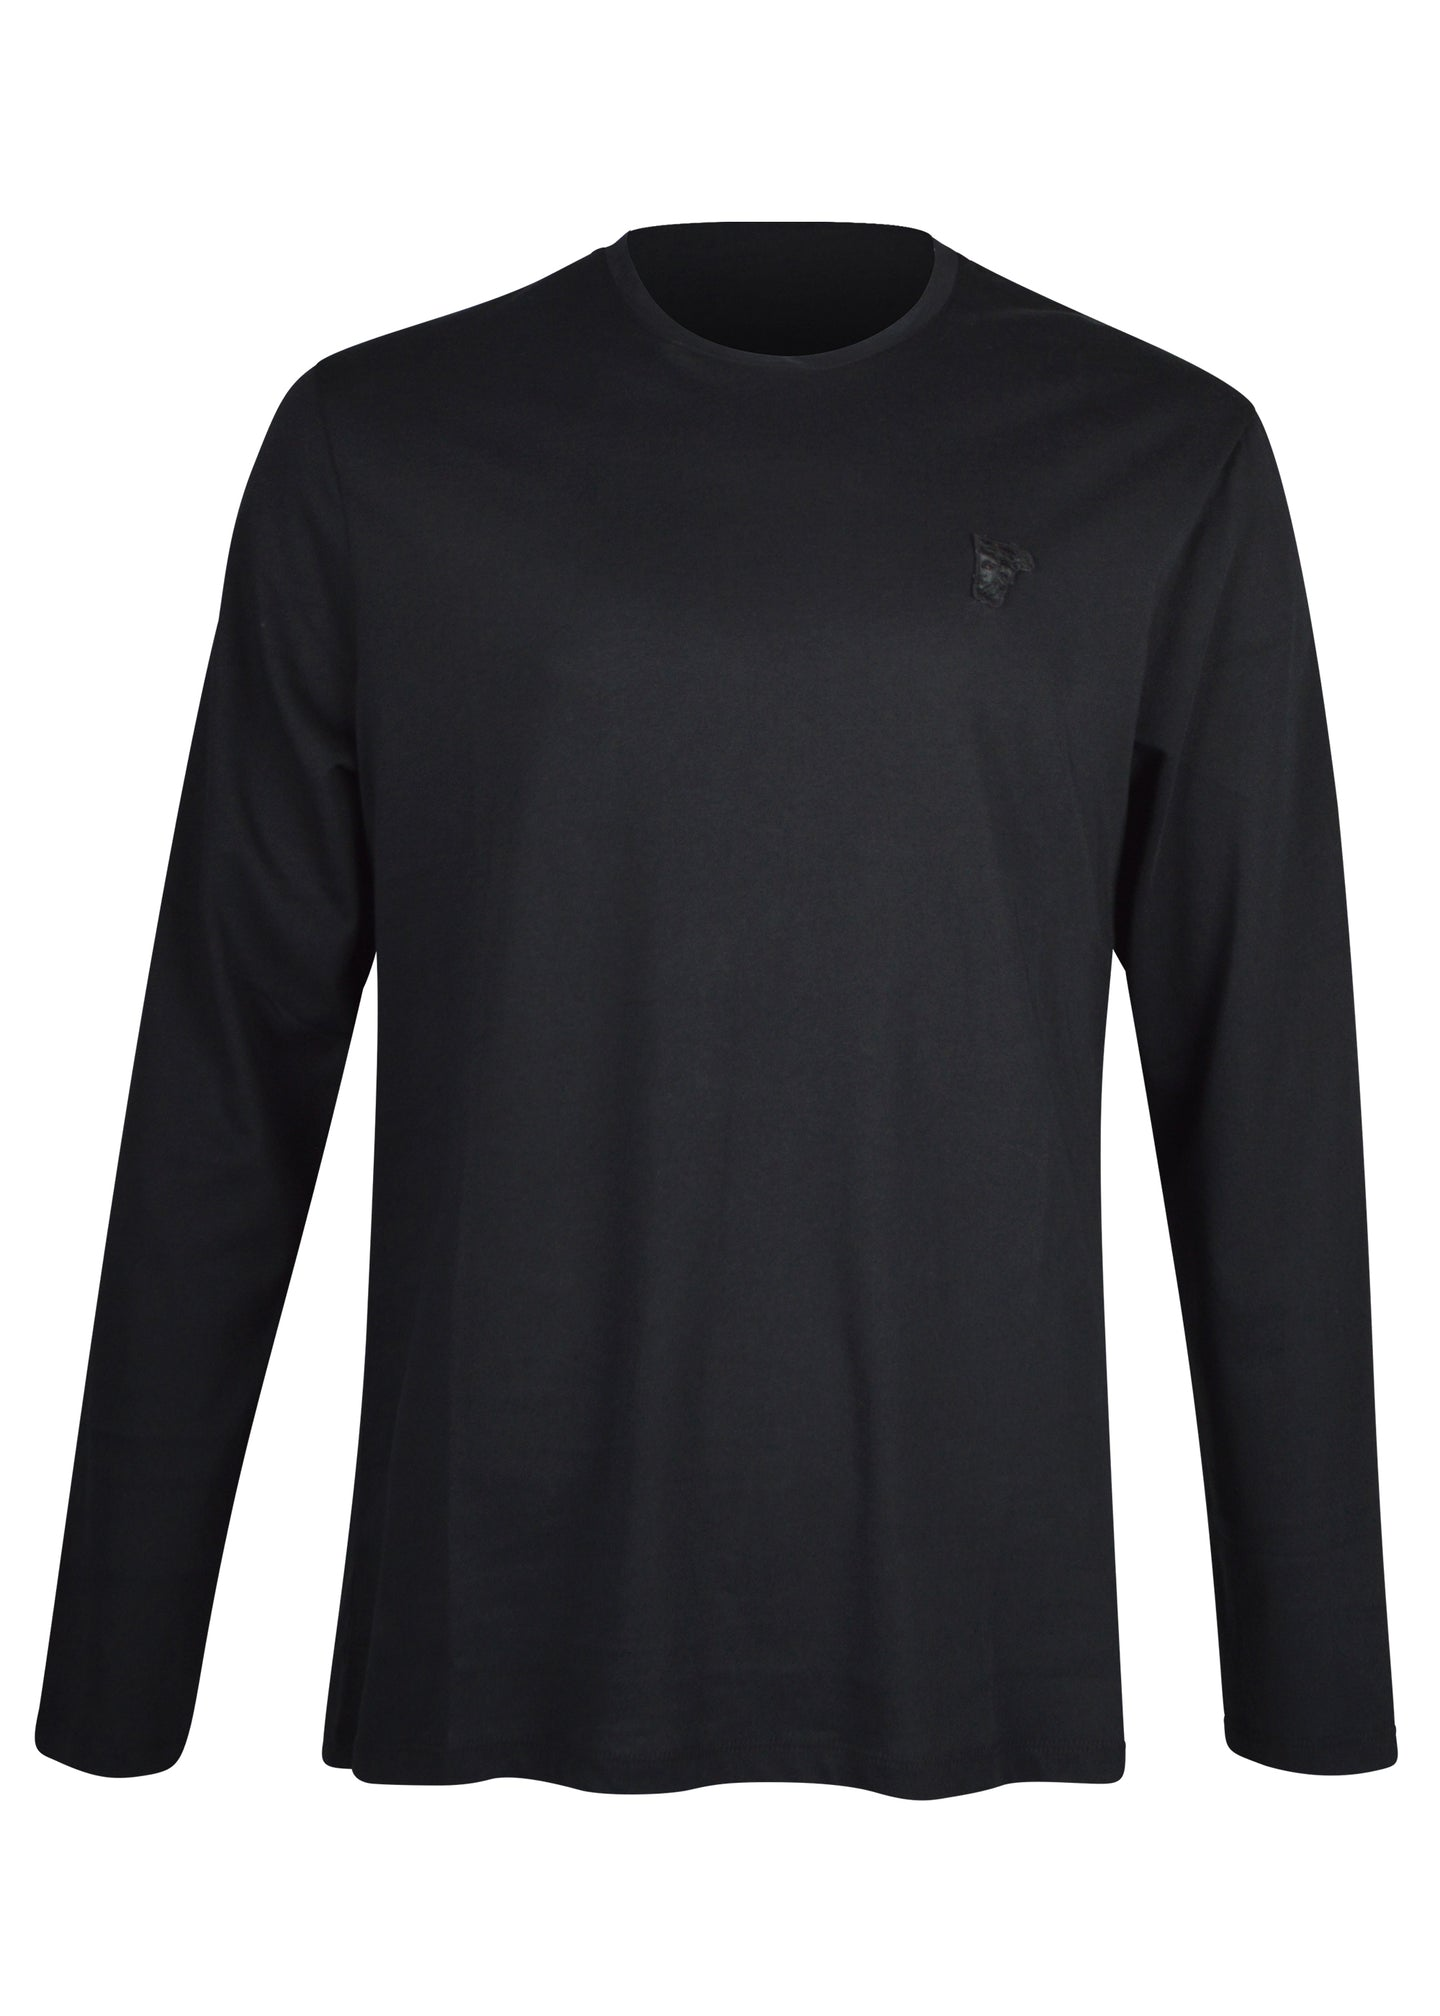 Versace Collection - Classic Long Sleeve Iconic Half Medusa T-Shirt - V800491R - Black Black